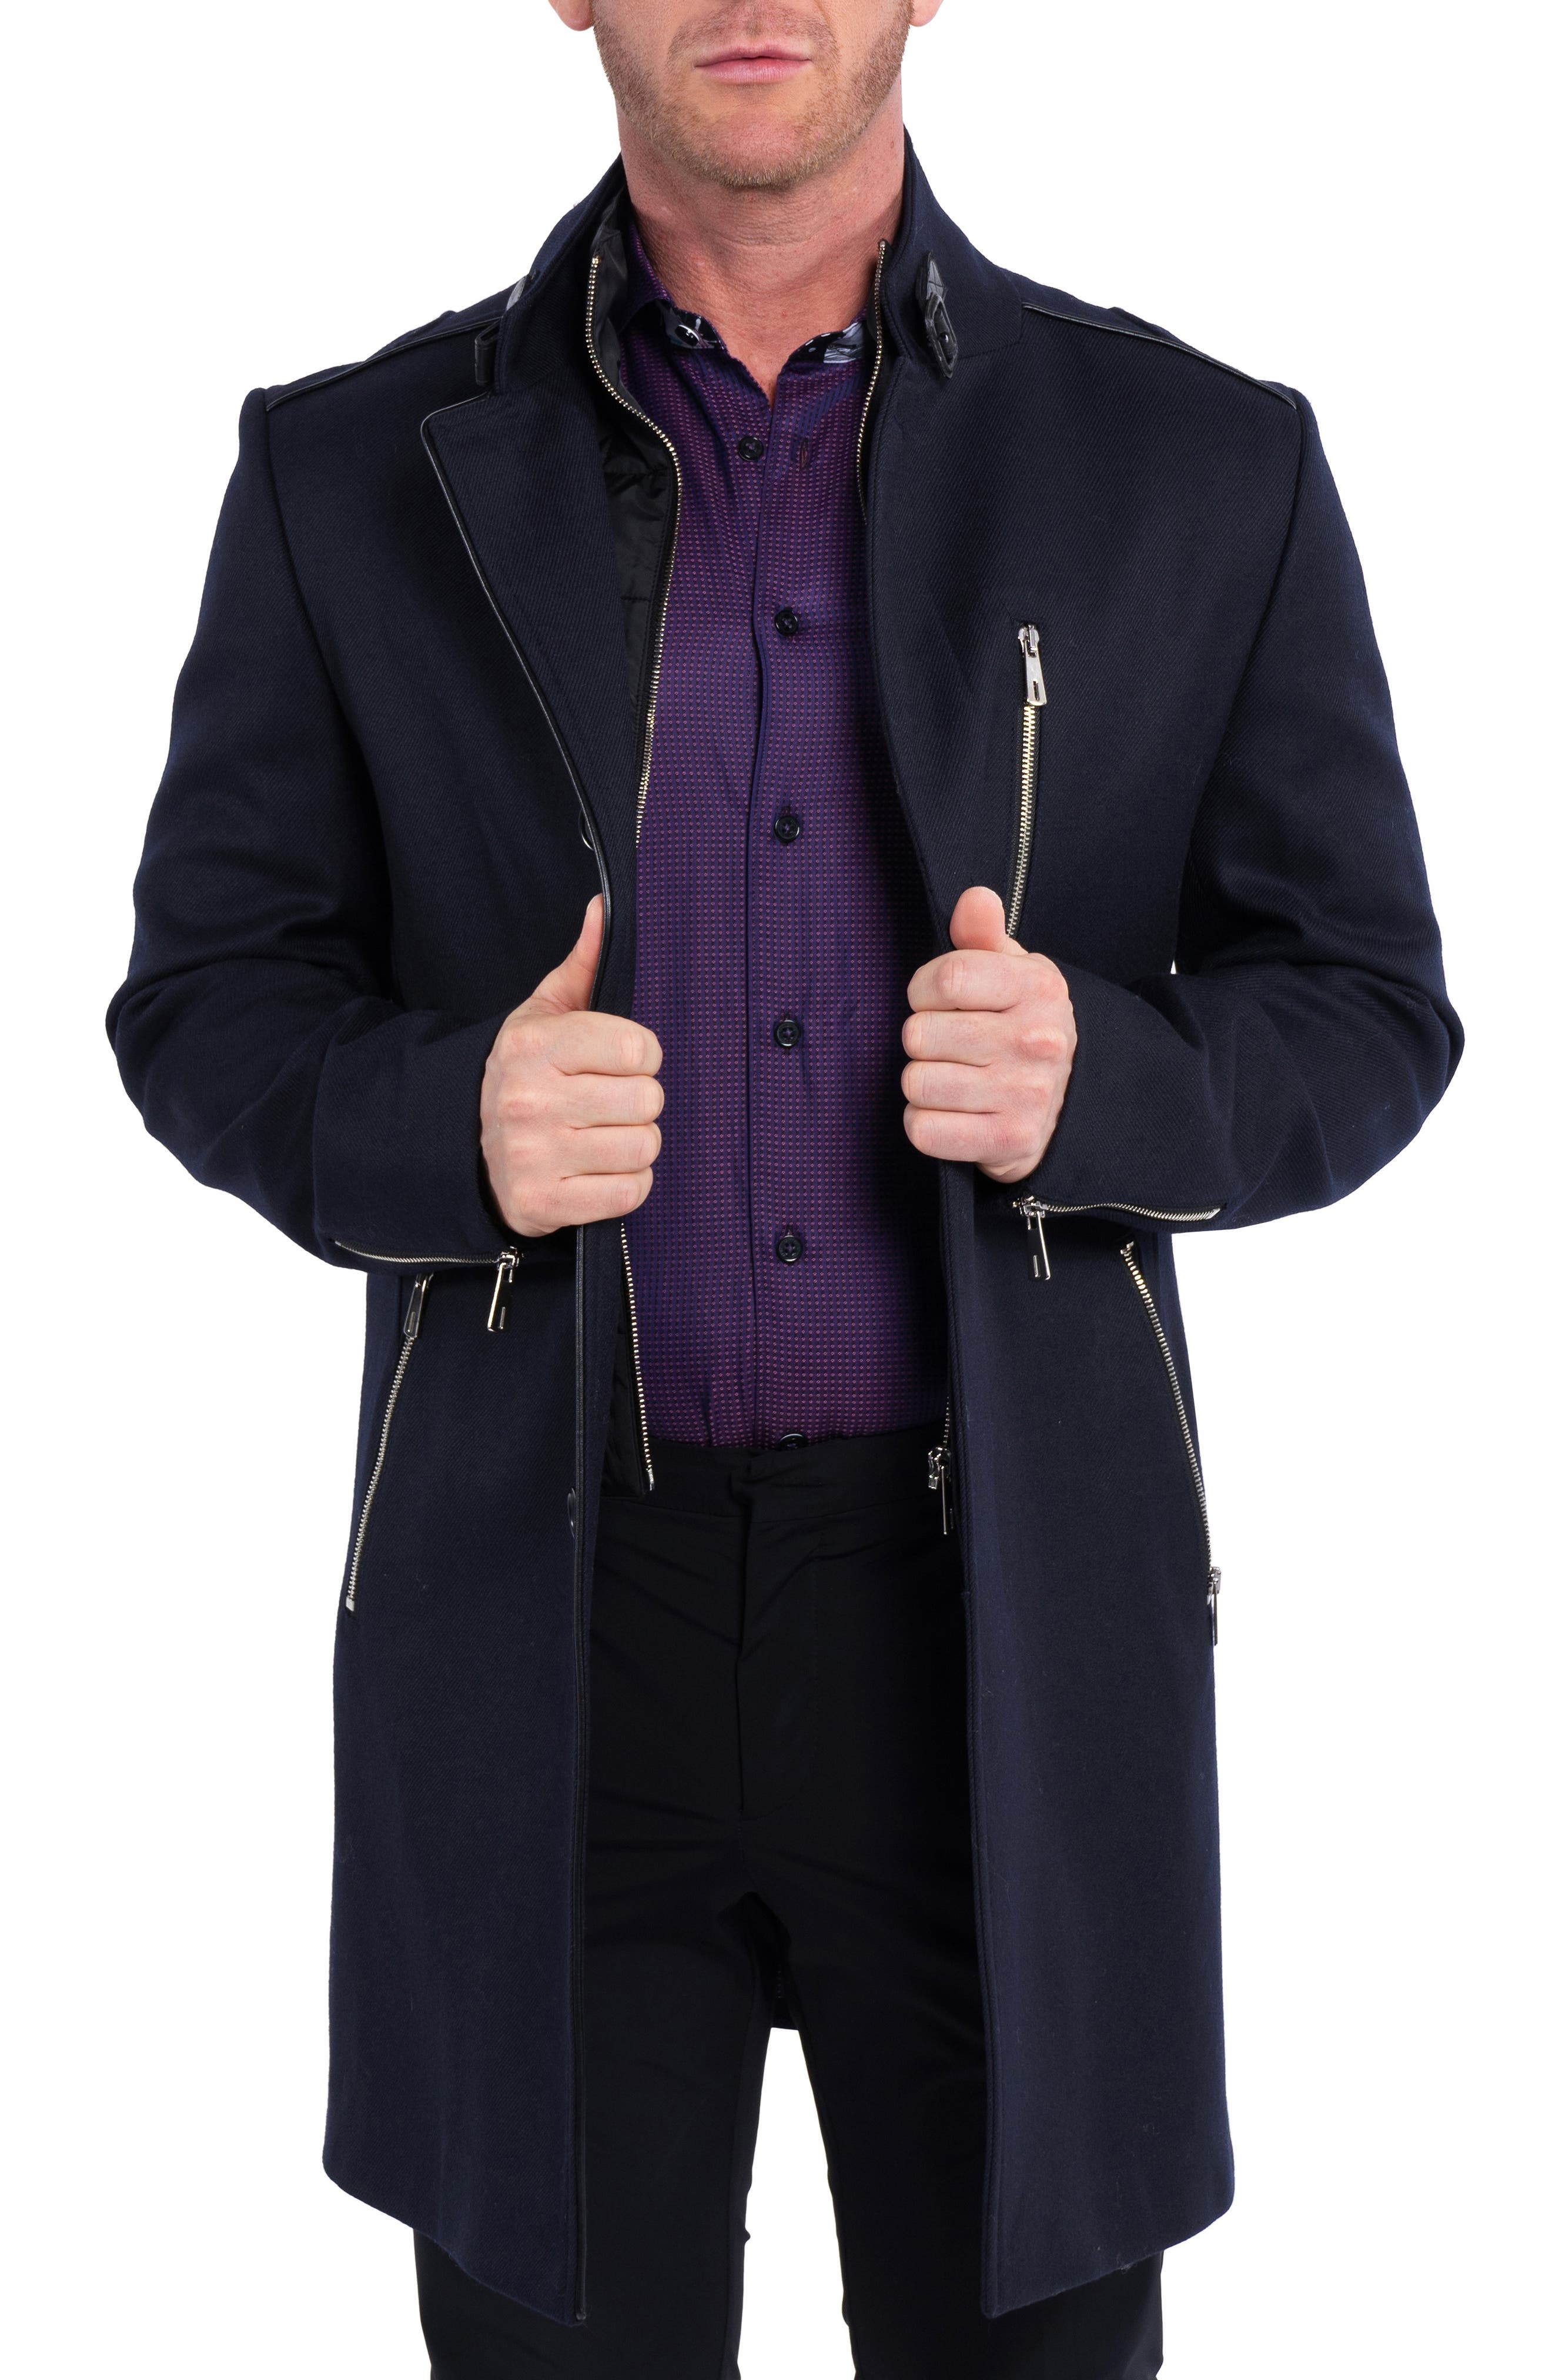 Captainnew Wool & Cashmere Overcoat